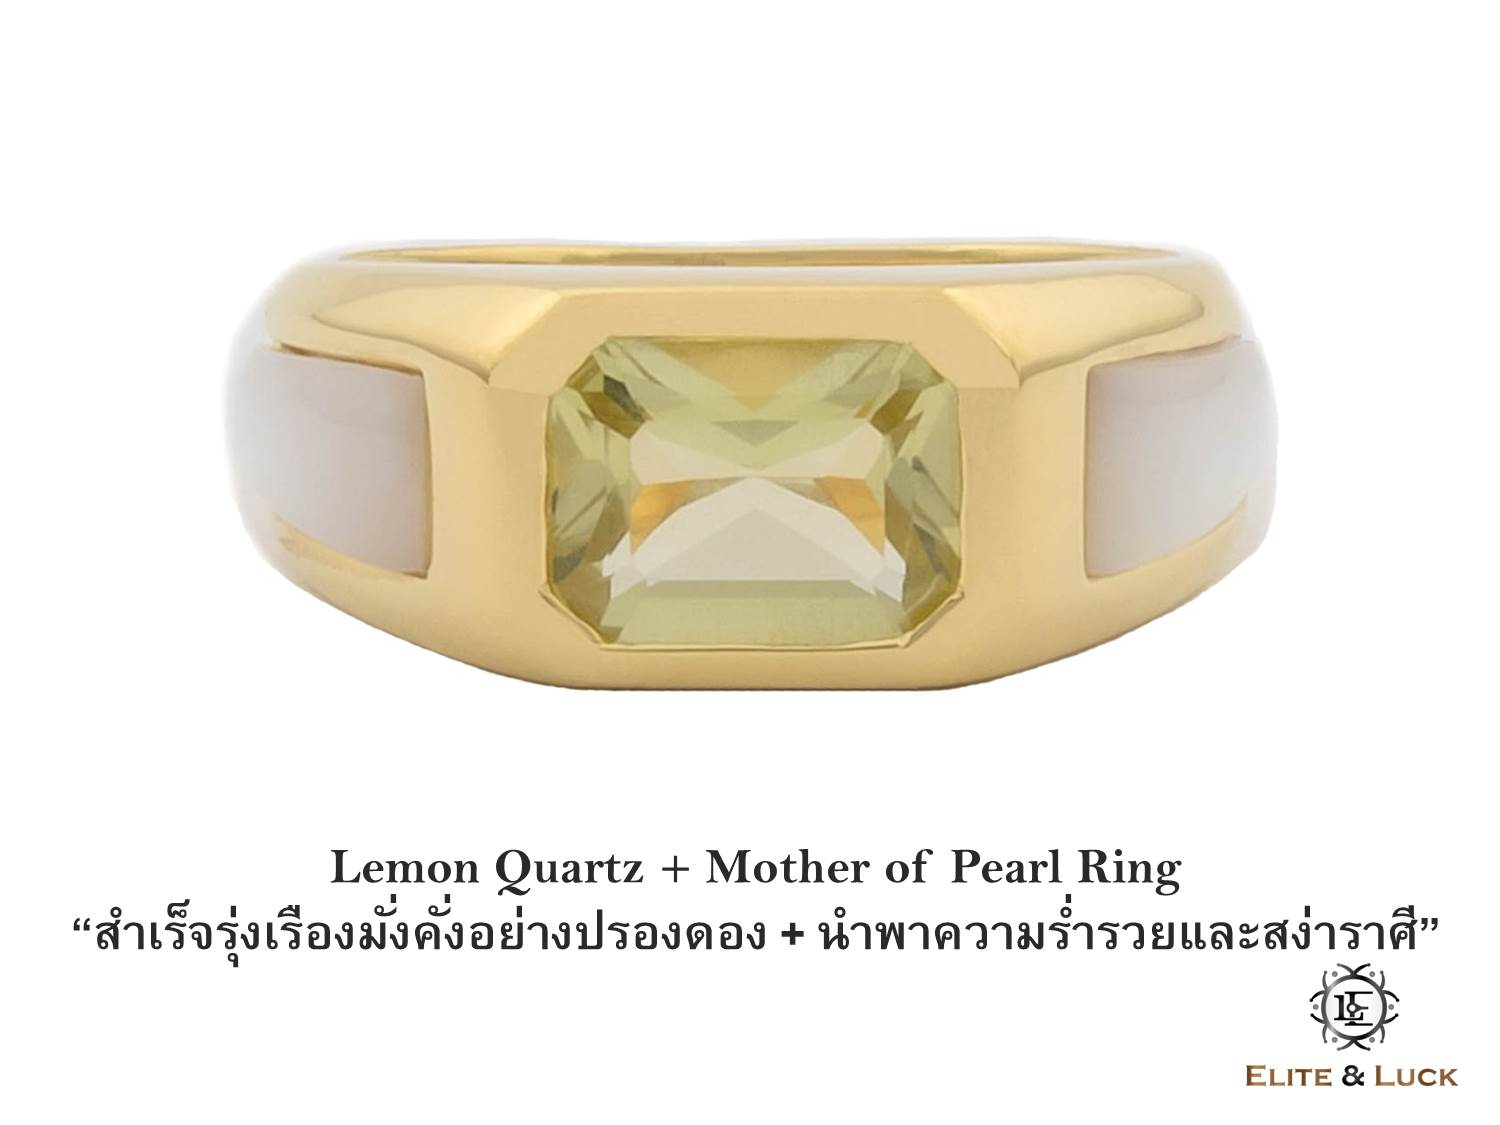 แหวน Lemon Quartz + Mother of Pearl Sterling Silver สี 18K Yellow Gold รุ่น Majestic